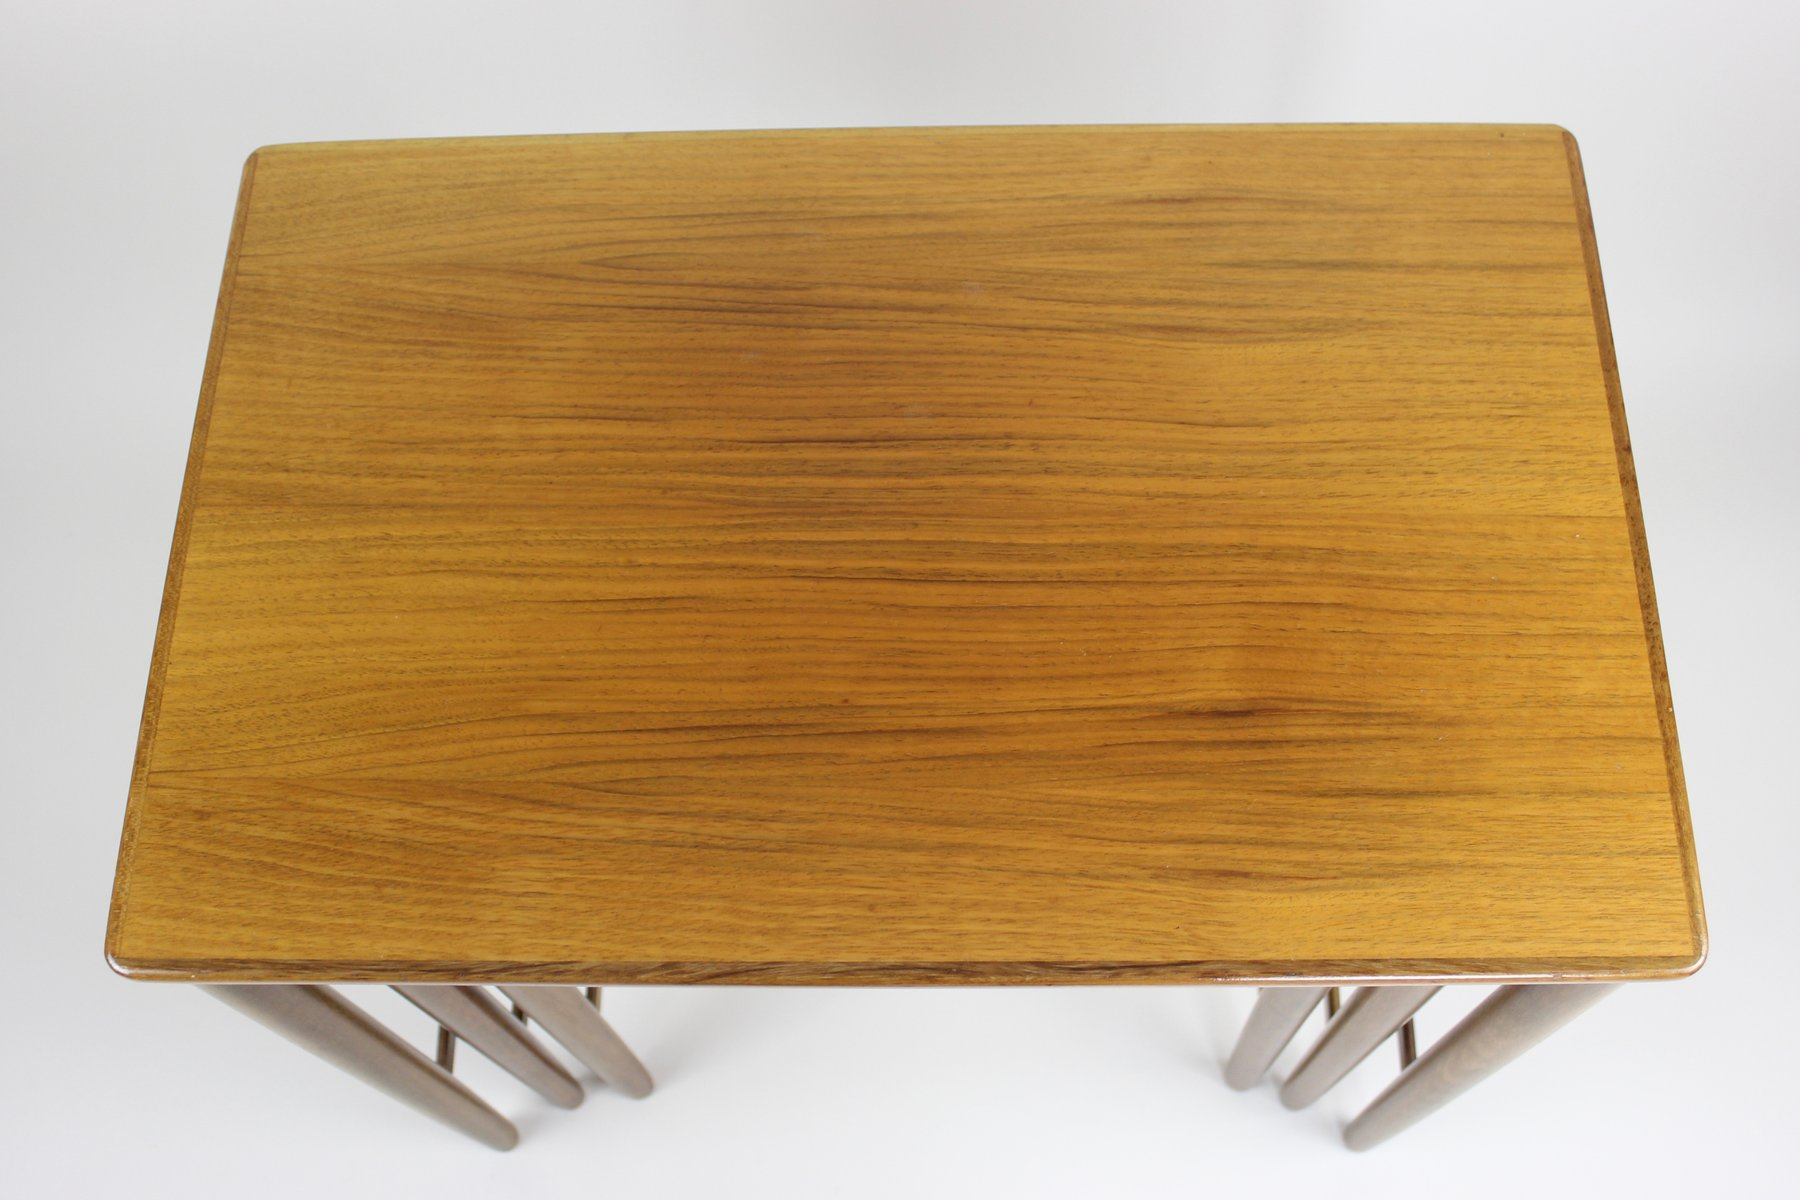 Mid century walnut nesting tables from opal mobel for sale at pamono - Mid century mobel ...